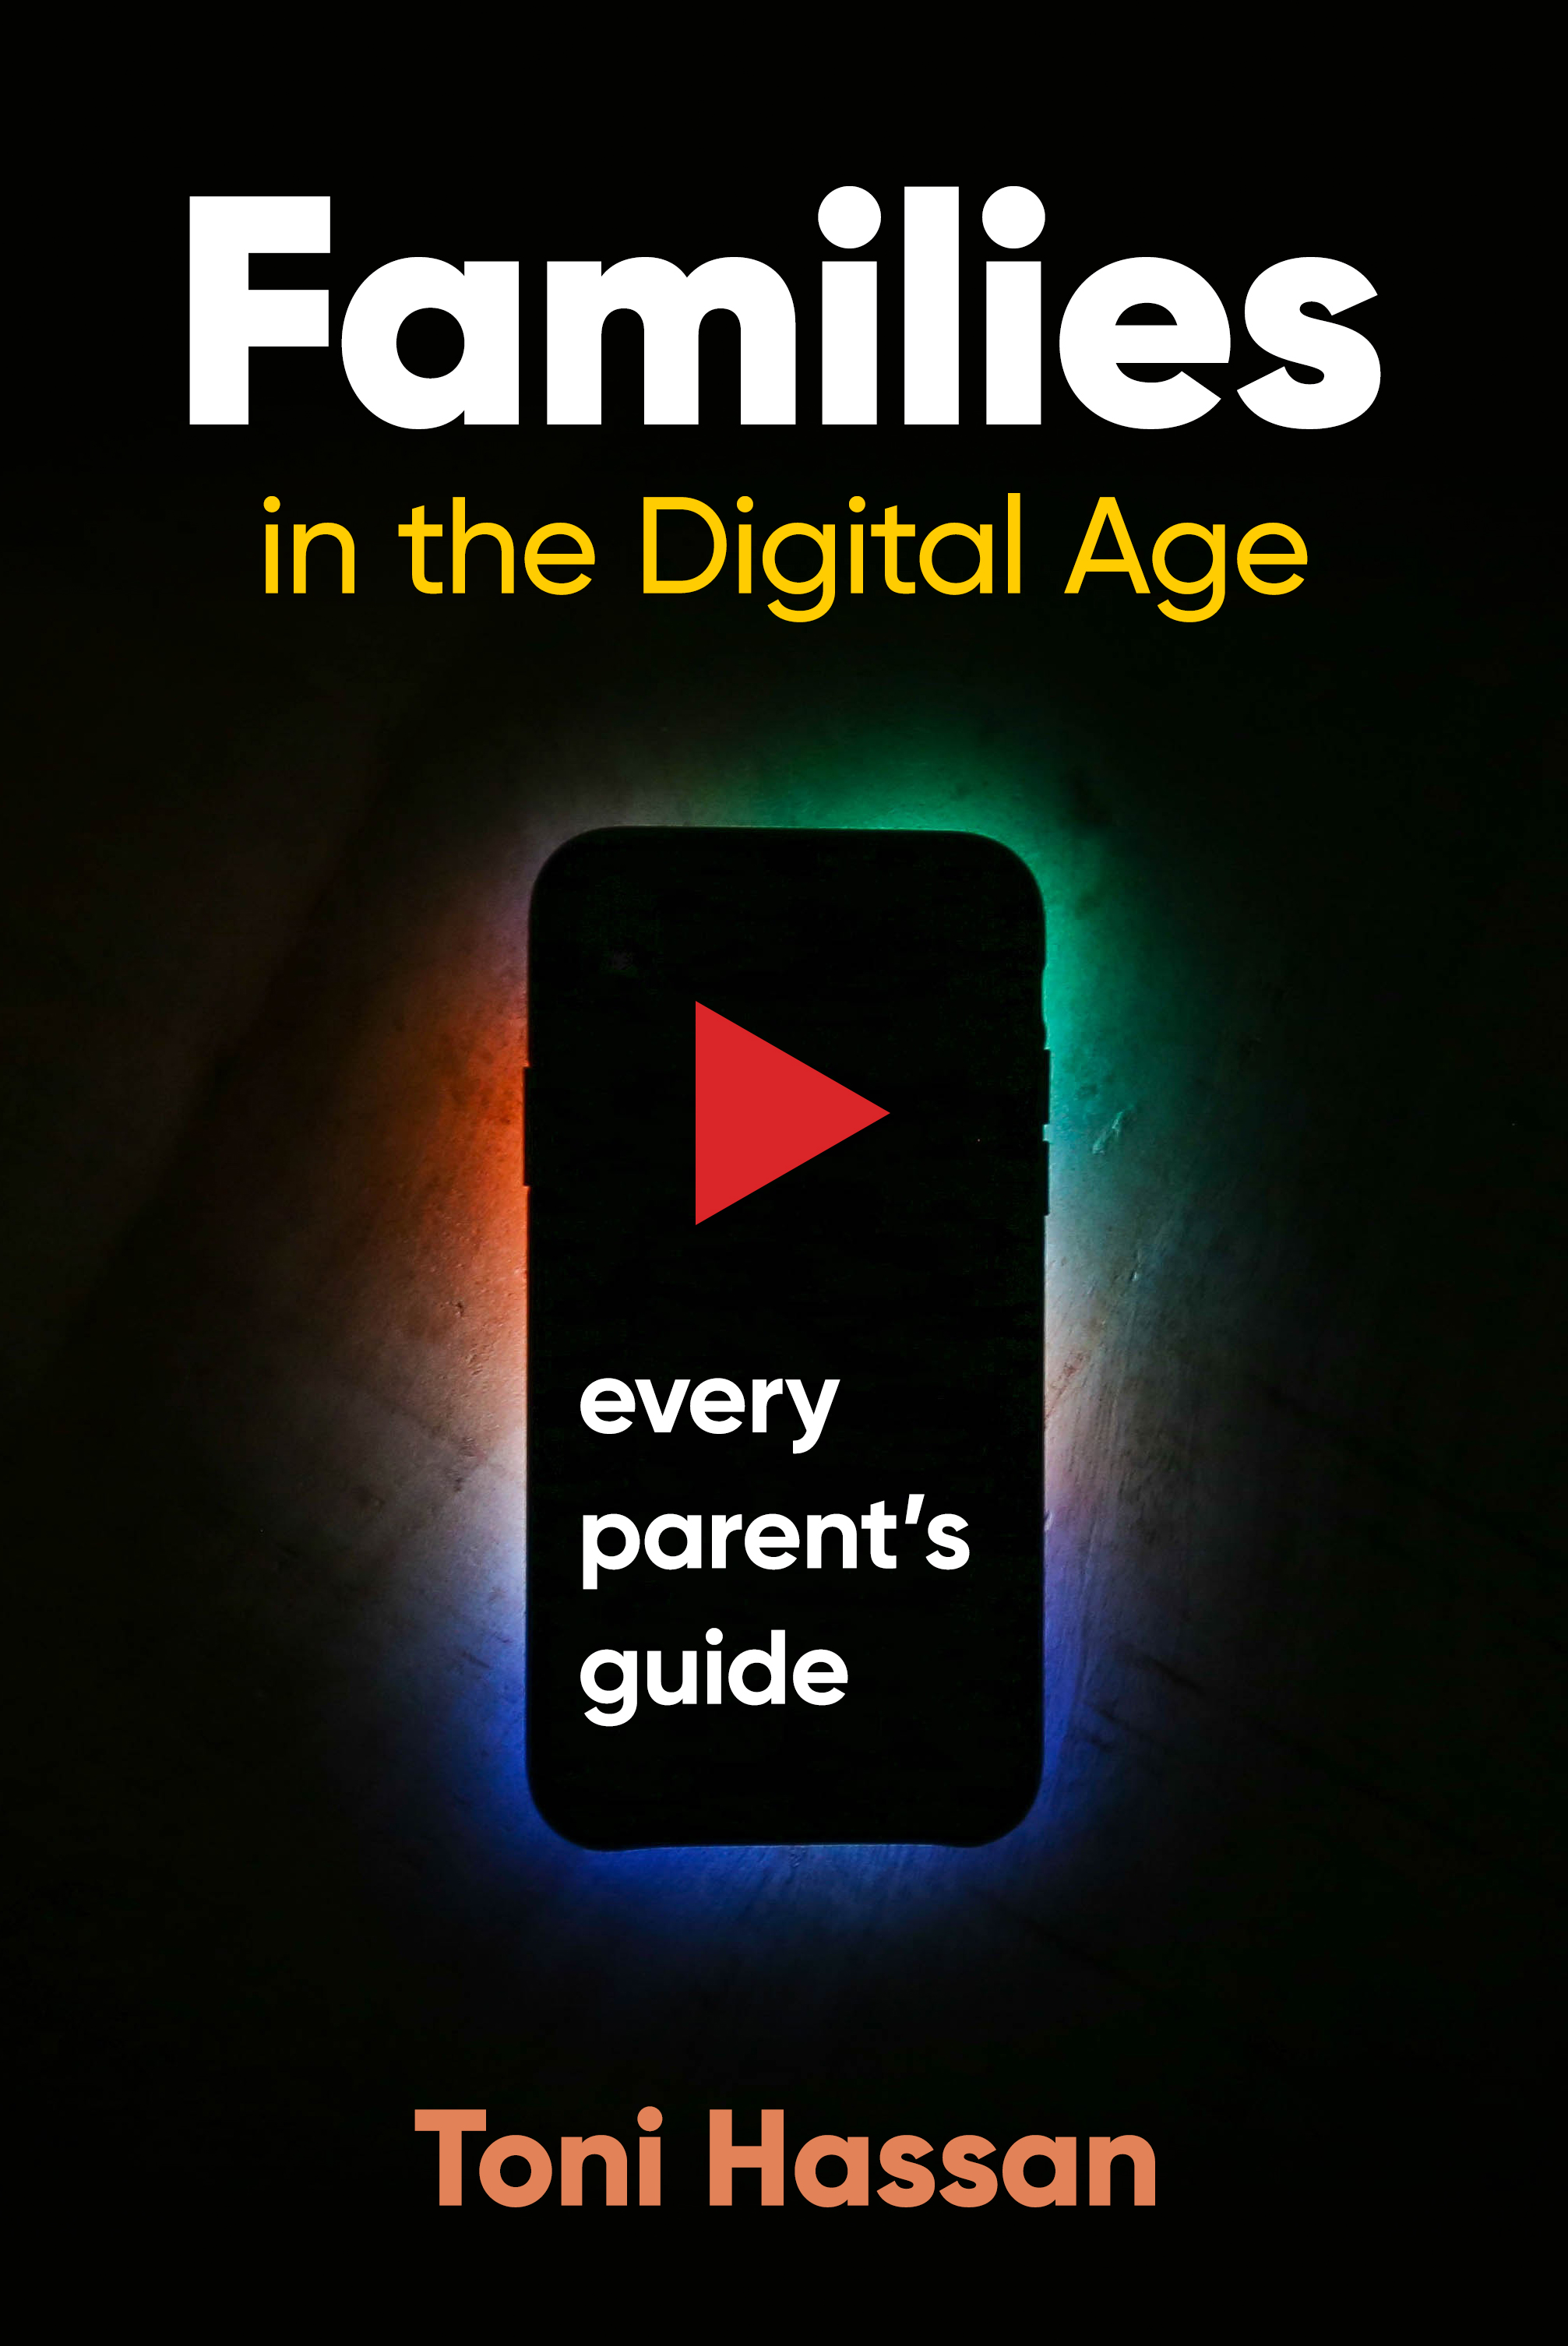 Families in the Digital Age_Cover 01.jpg